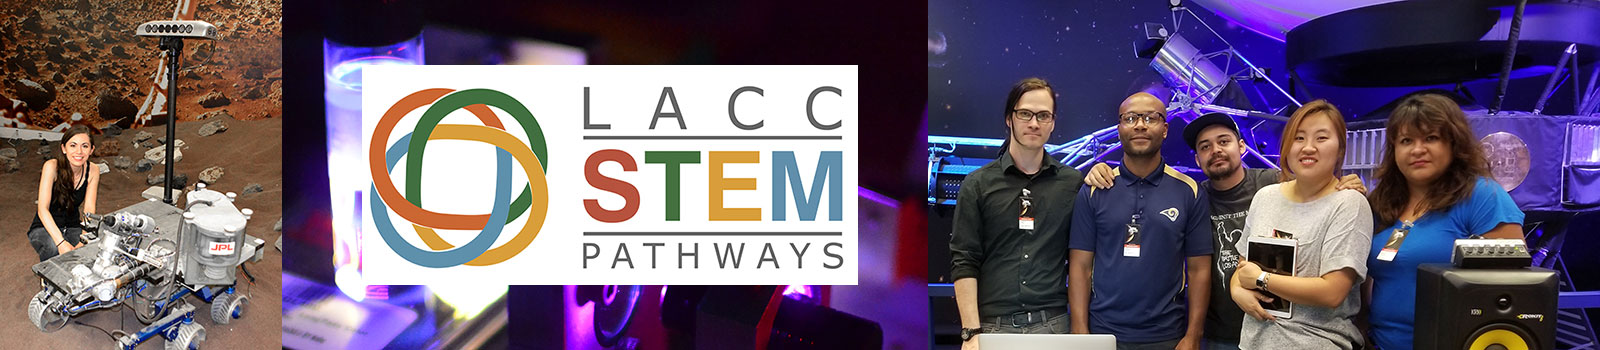 STEM Pathways LOGO